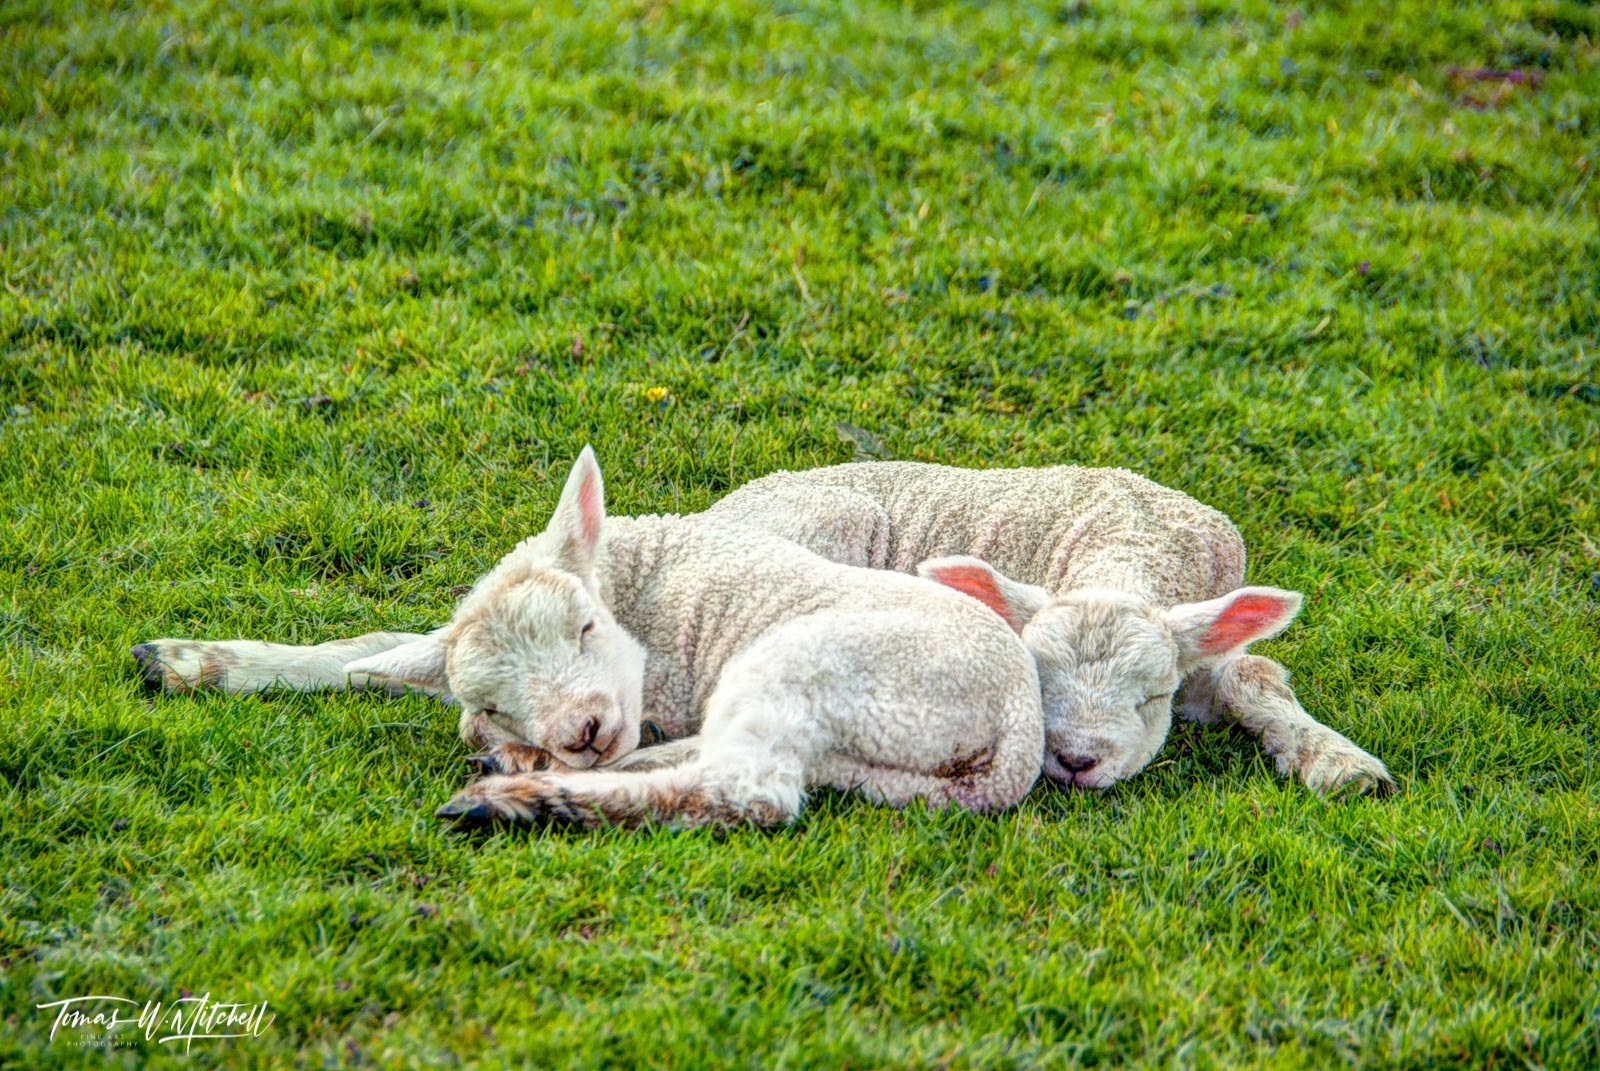 limited edition, museum grade, fine art, prints, nap time, lake district, england, forest side hotel, grasmere, mountains, lakes, villages, farming, village, lambs, field, photo